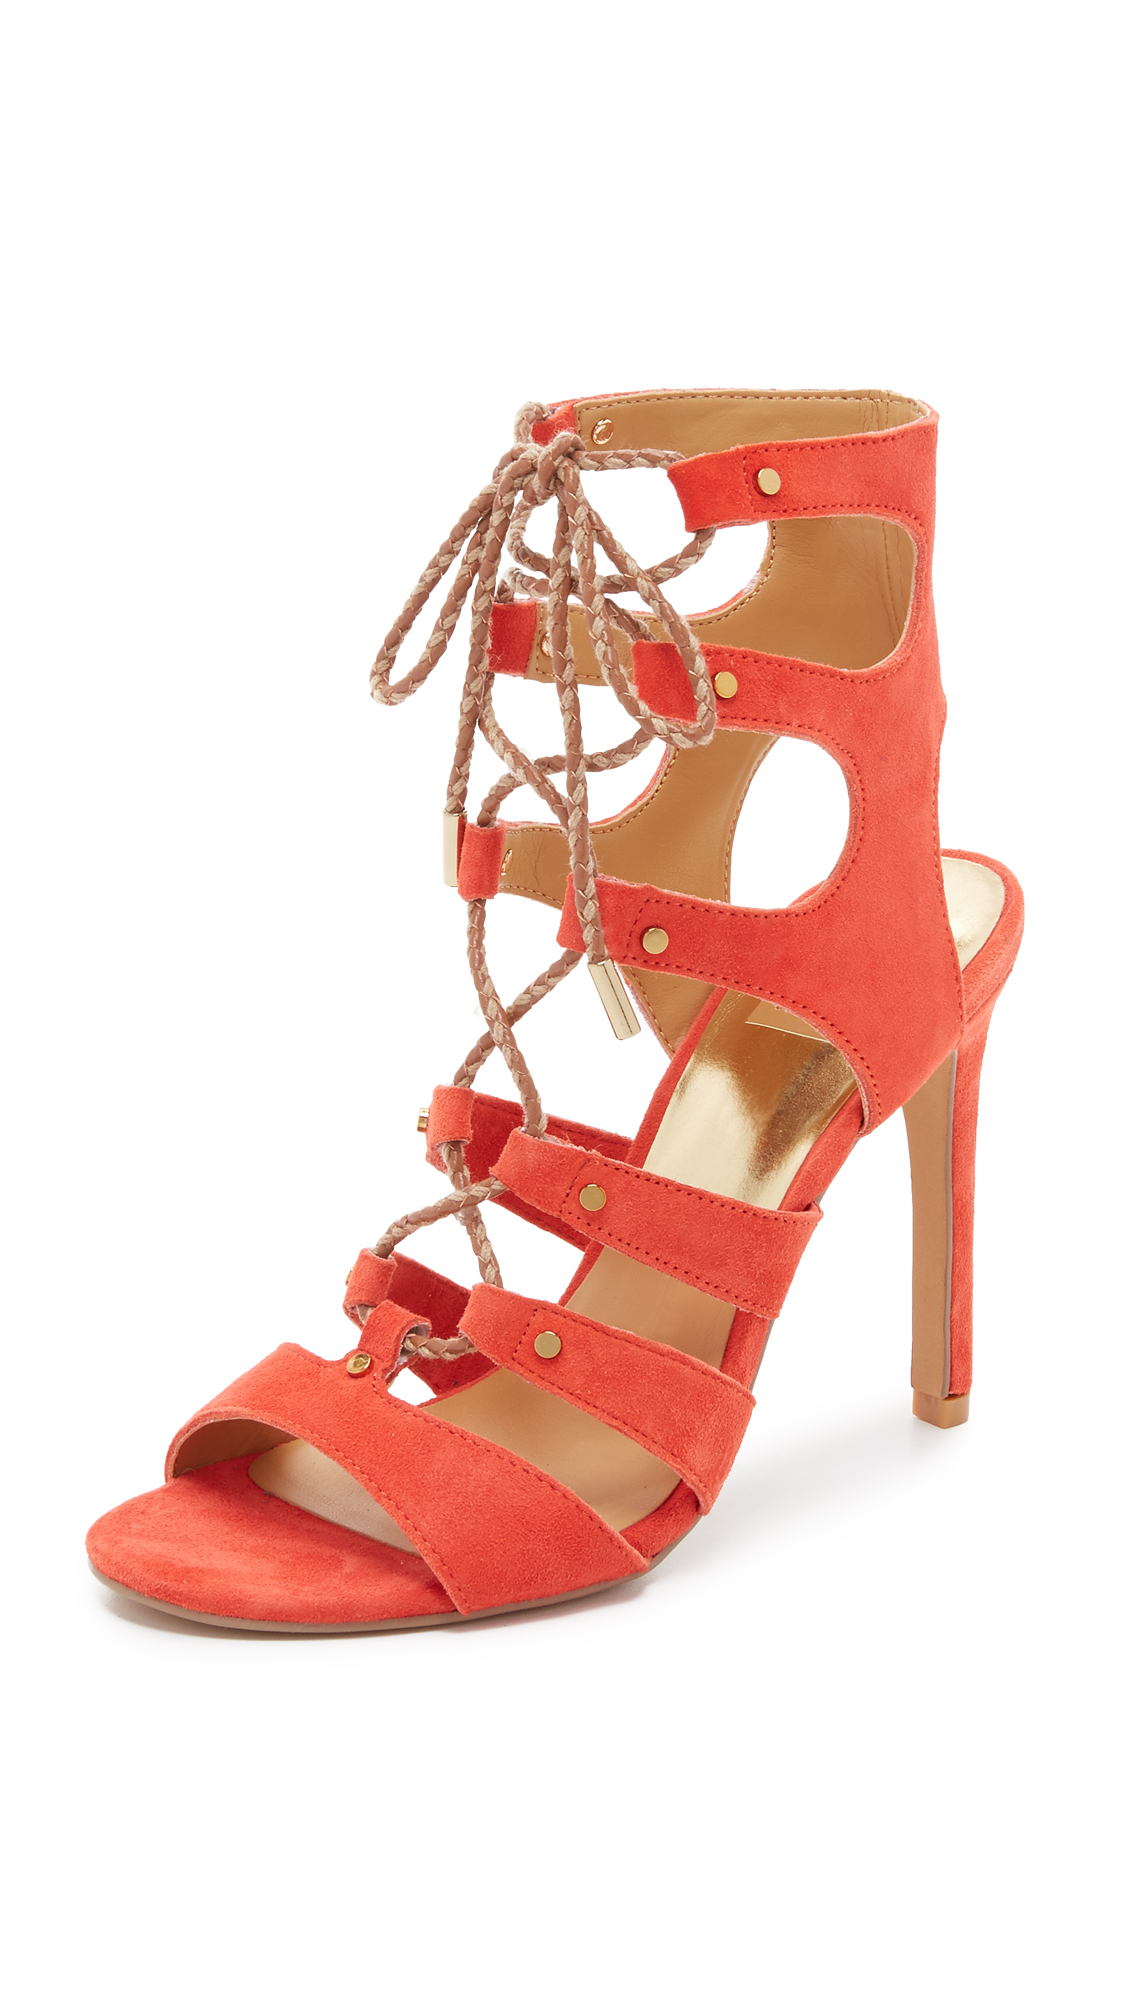 Dolce Vita Howie Lace Up Sandals - Red Orange at Shopbop